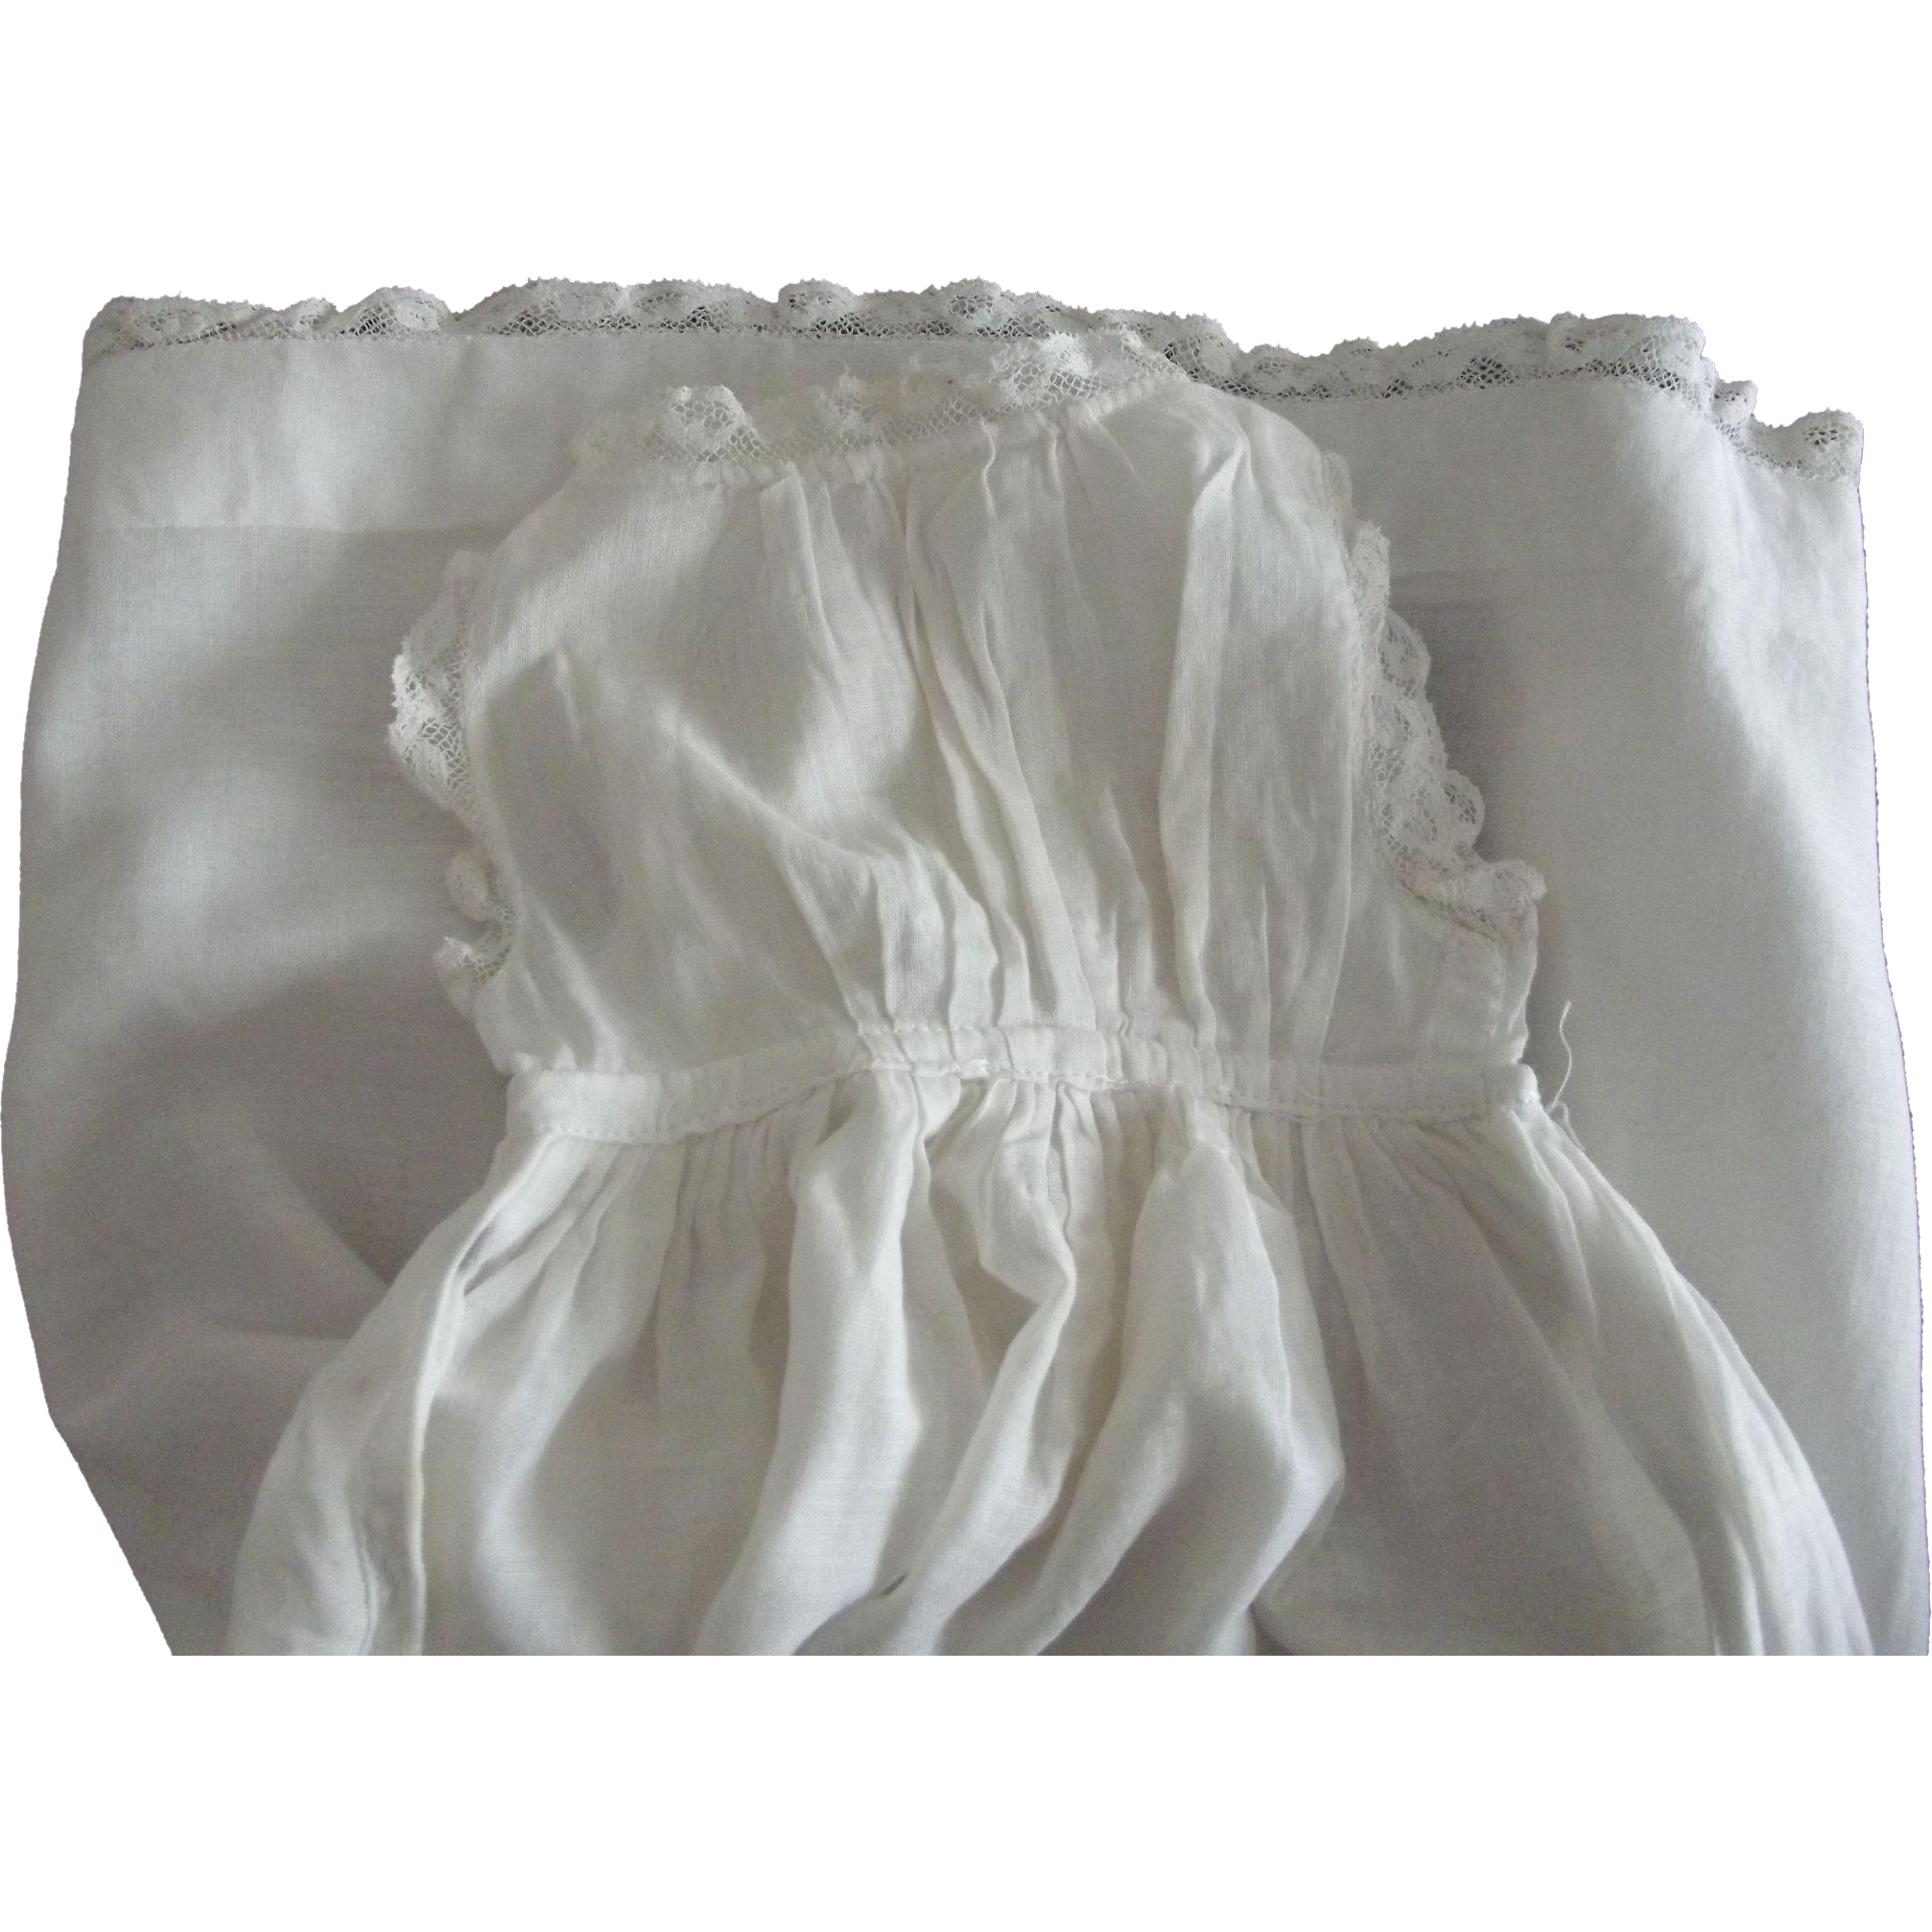 Fine Lawn Lace Trimmed Whole Slip For A Doll